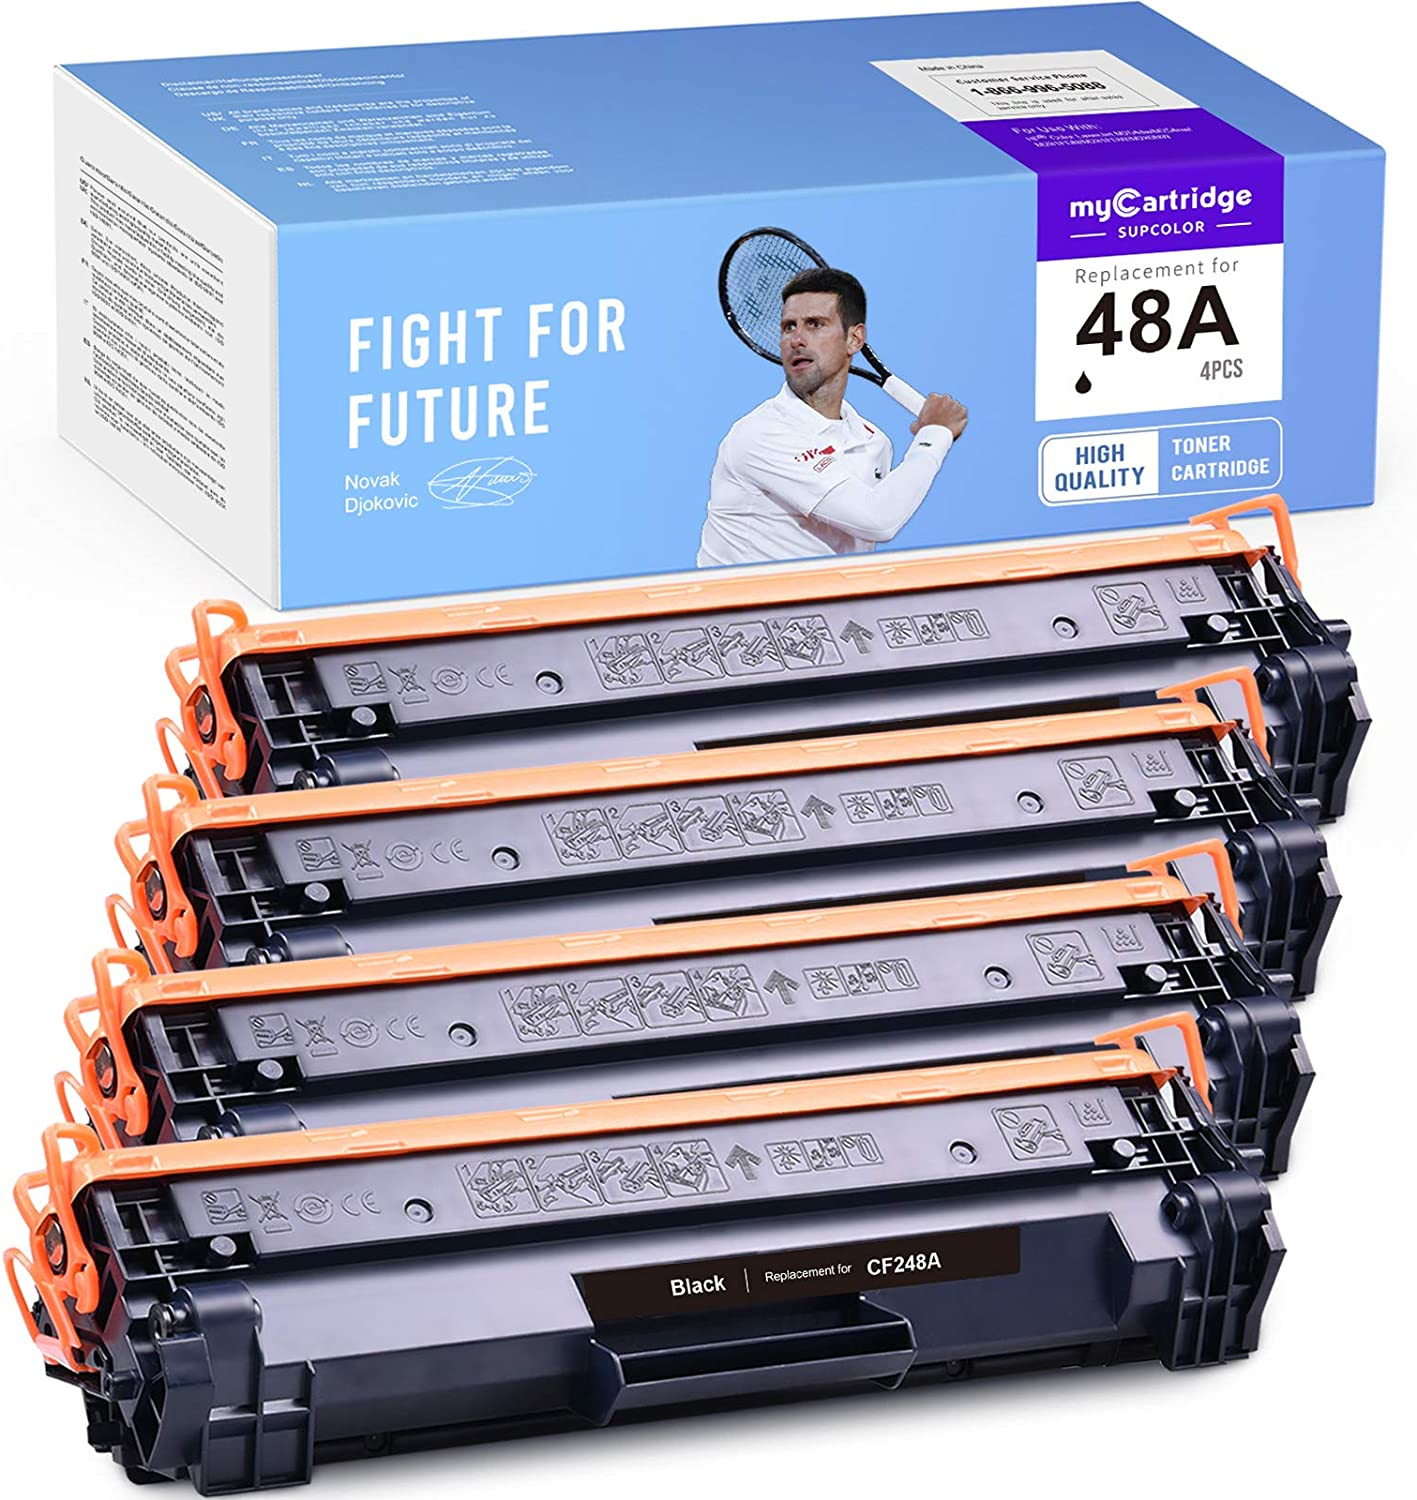 myCartridge SUPCOLOR Compatible Toner Cartridge Replacement for HP 48A CF248A use with HP Laserjet Pro M15w M15a M15 M16 M16w M16a MFP M29w M31w M29 M28w M28 M28a M29a M30w (Black, 4-Pack)